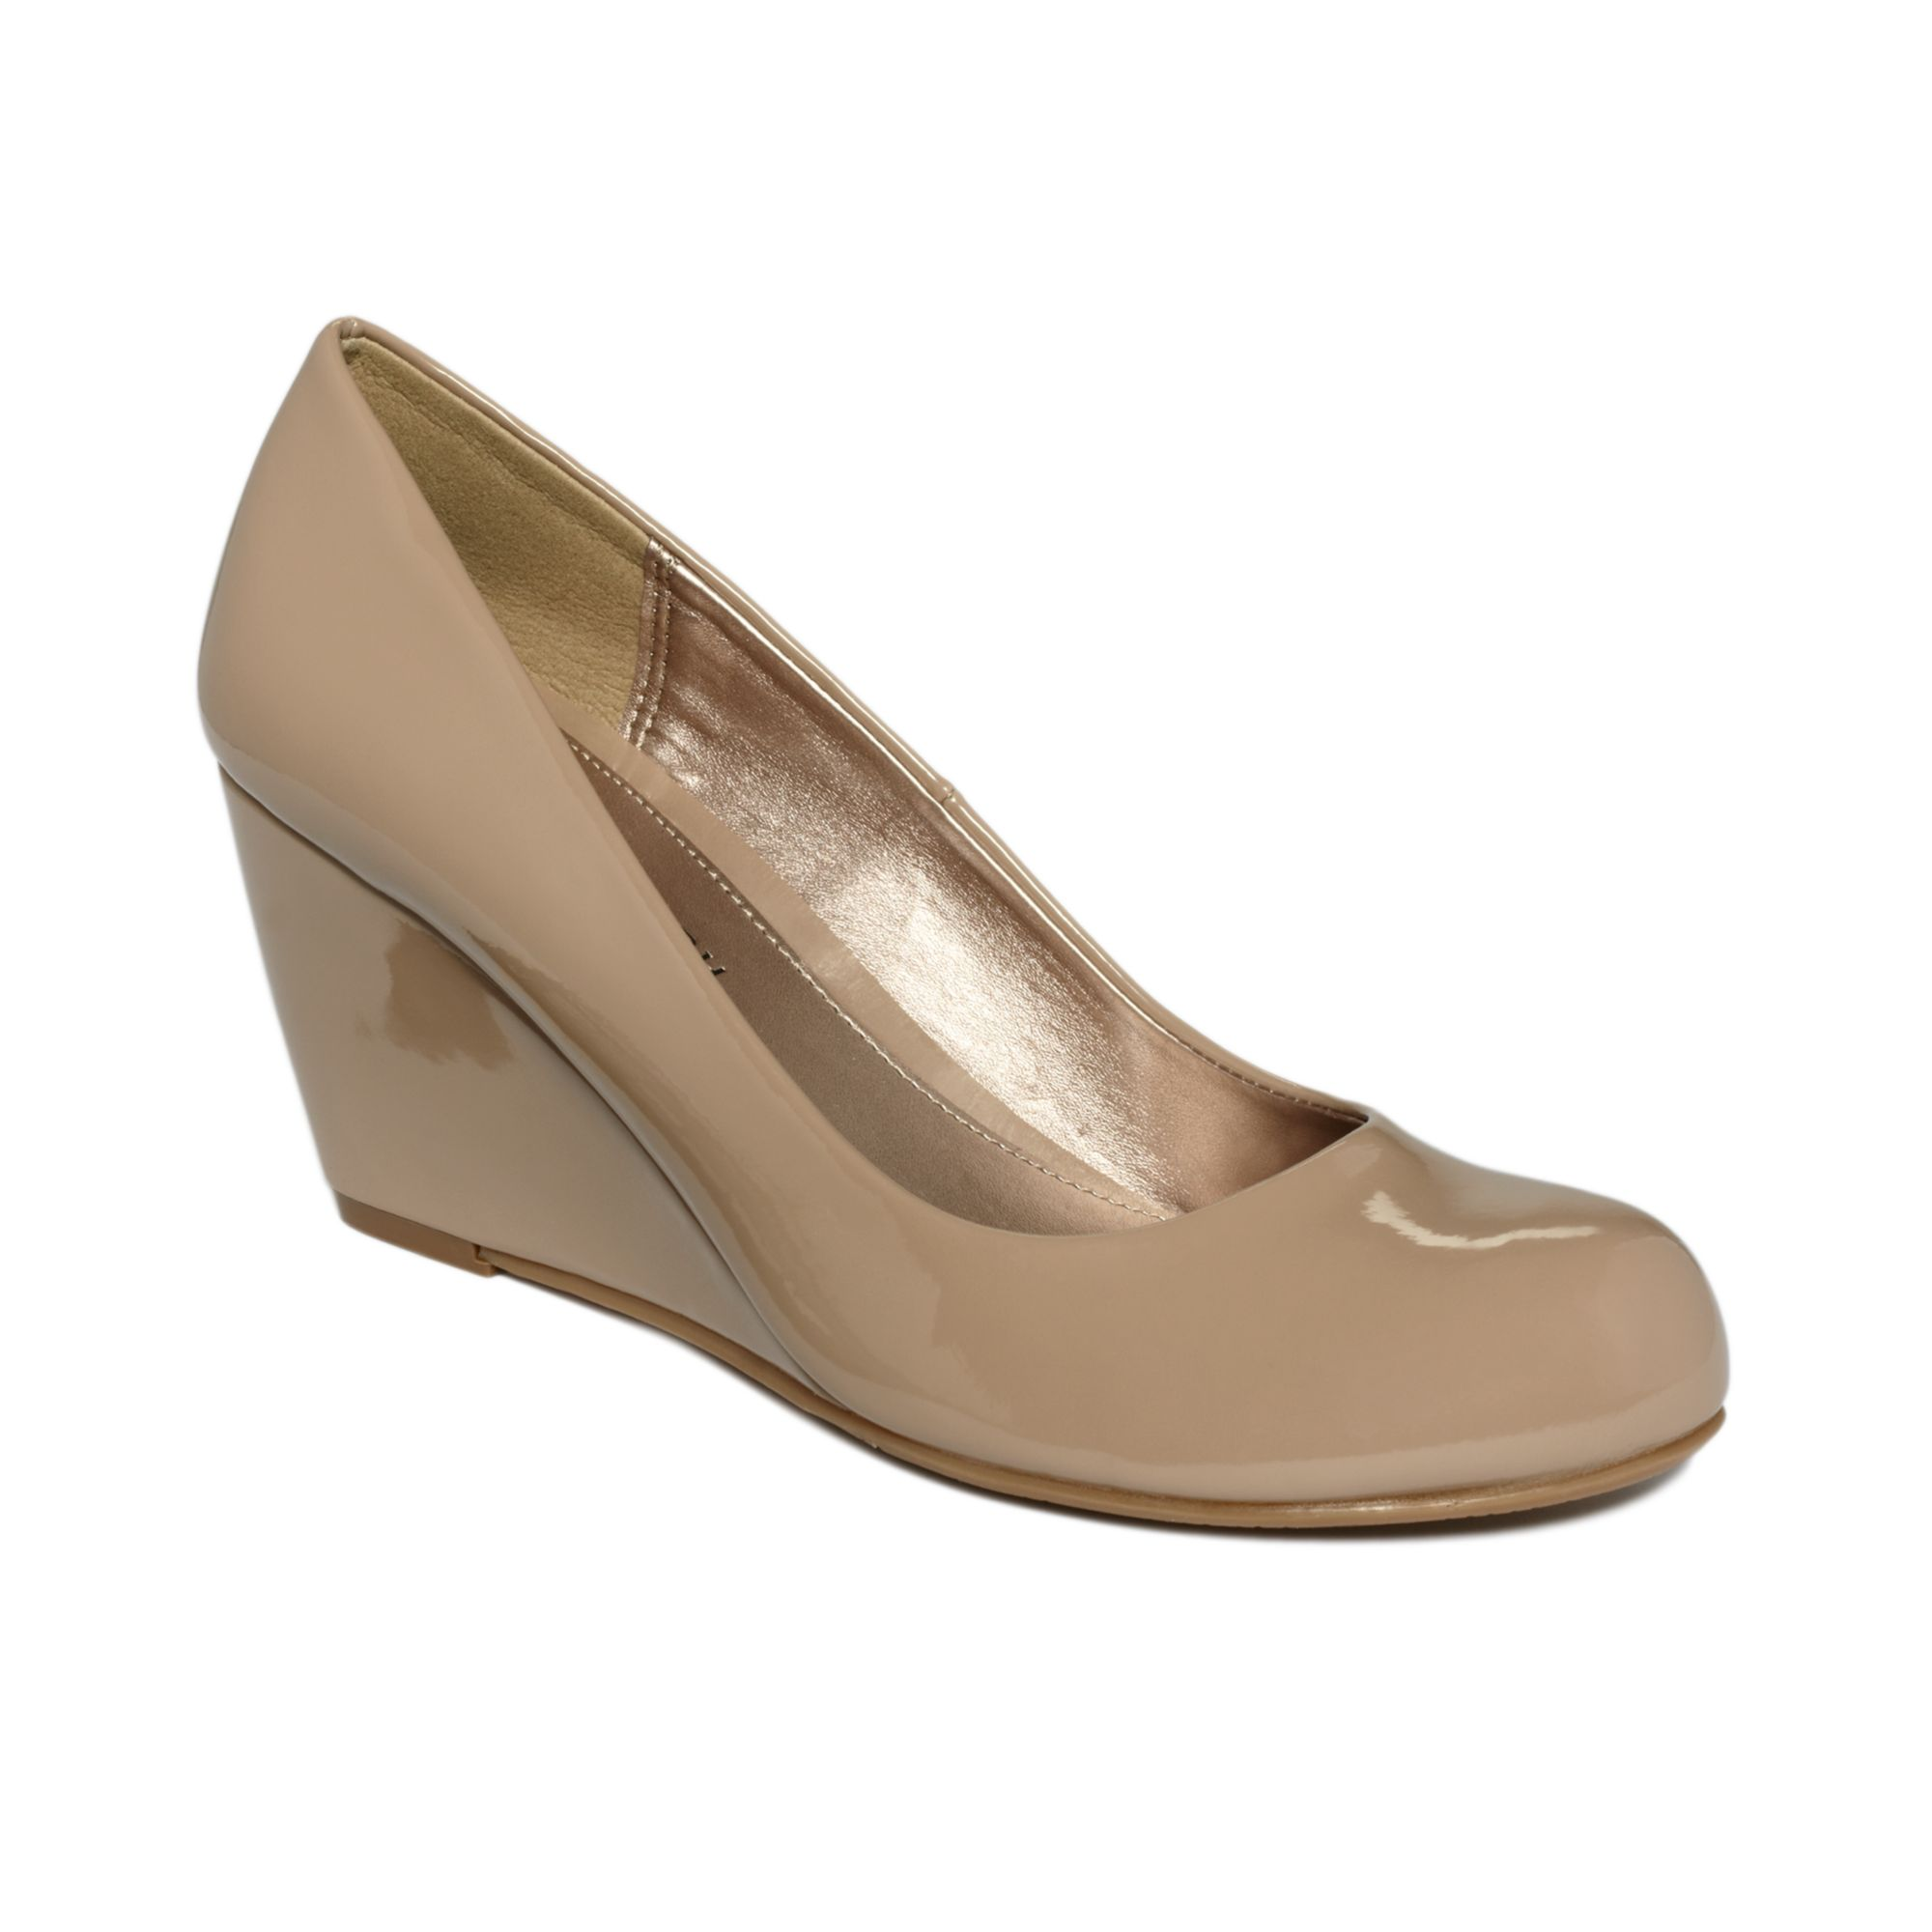 Chinese Laundry Cl By Laundry Shoes Nima Wedges in Beige